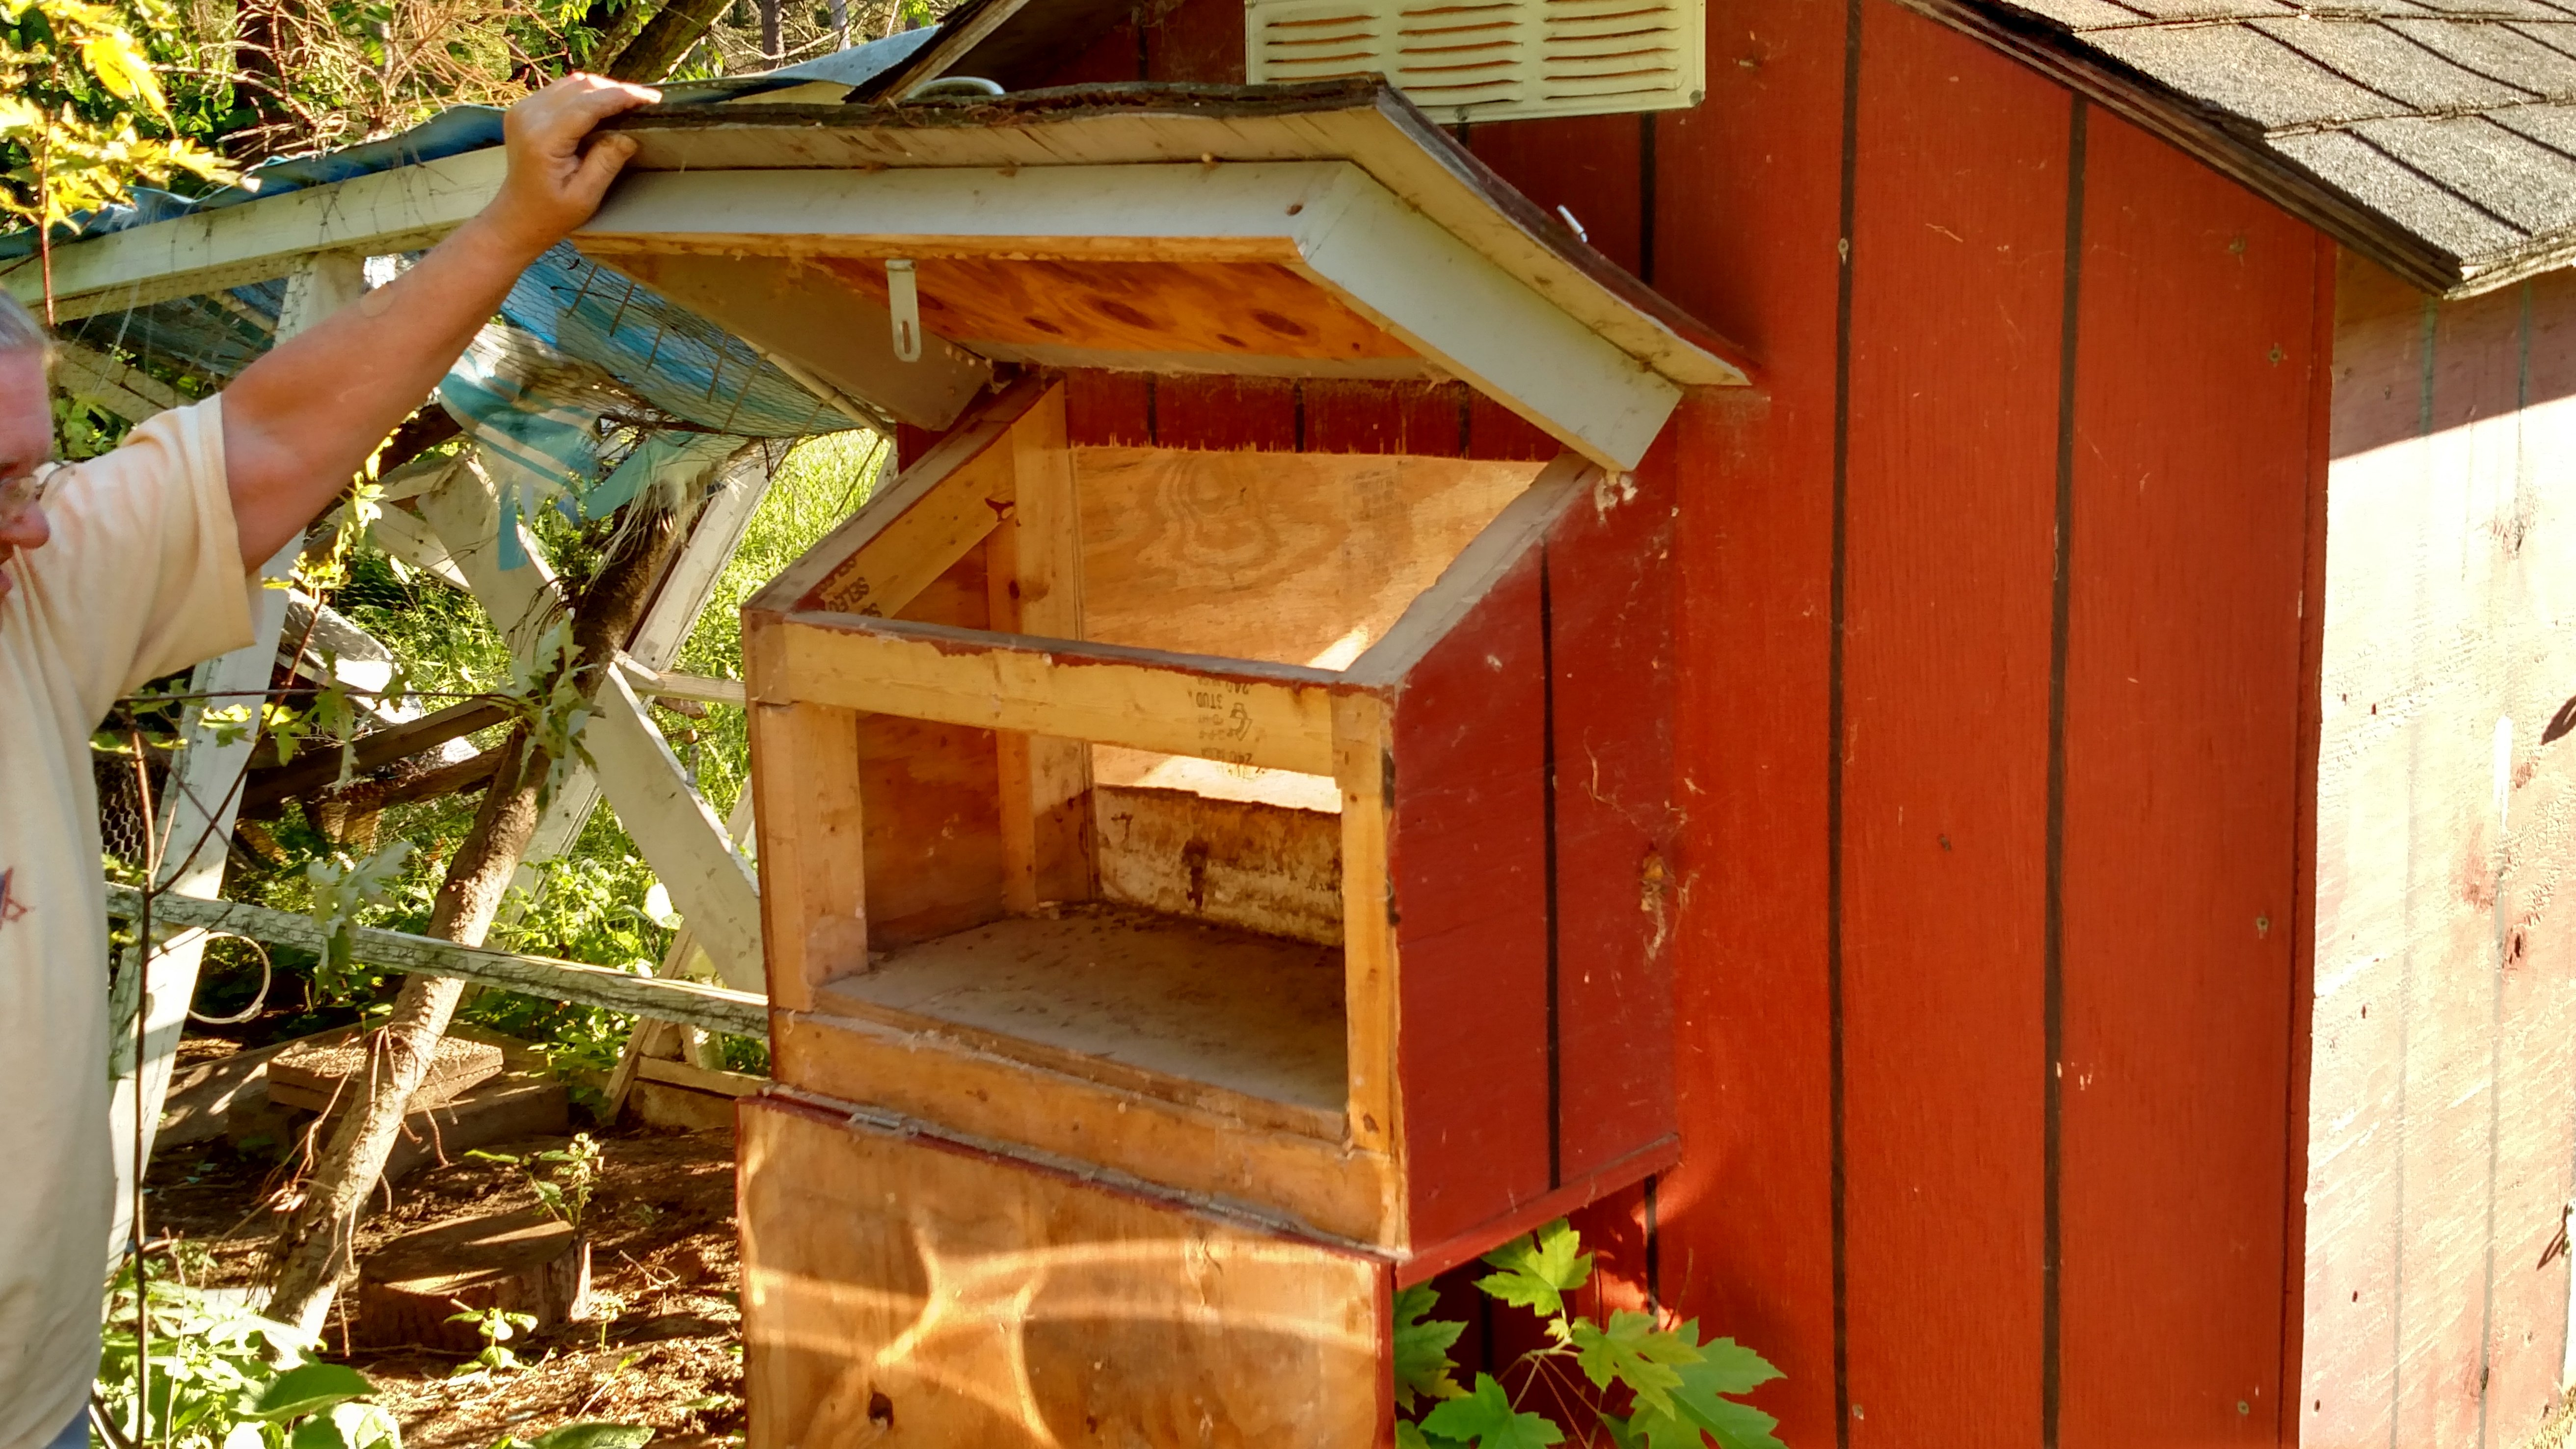 3riverschick's photos in Do nesting boxes need locks/latches?